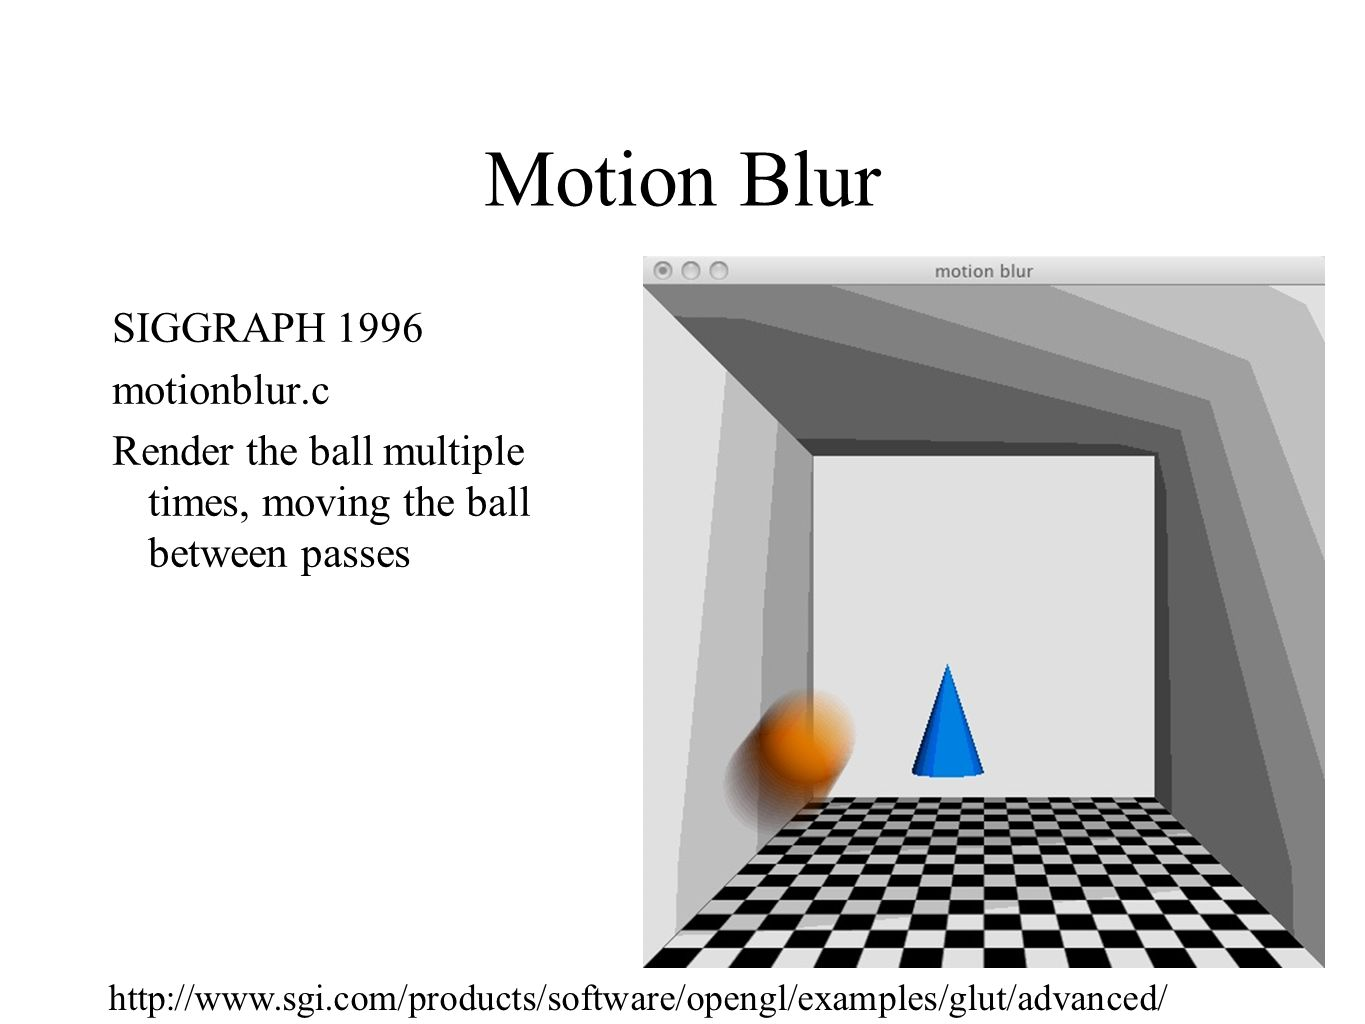 Motion Blur SIGGRAPH 1996 motionblur.c Render the ball multiple times, moving the ball between passes http://www.sgi.com/products/software/opengl/exam